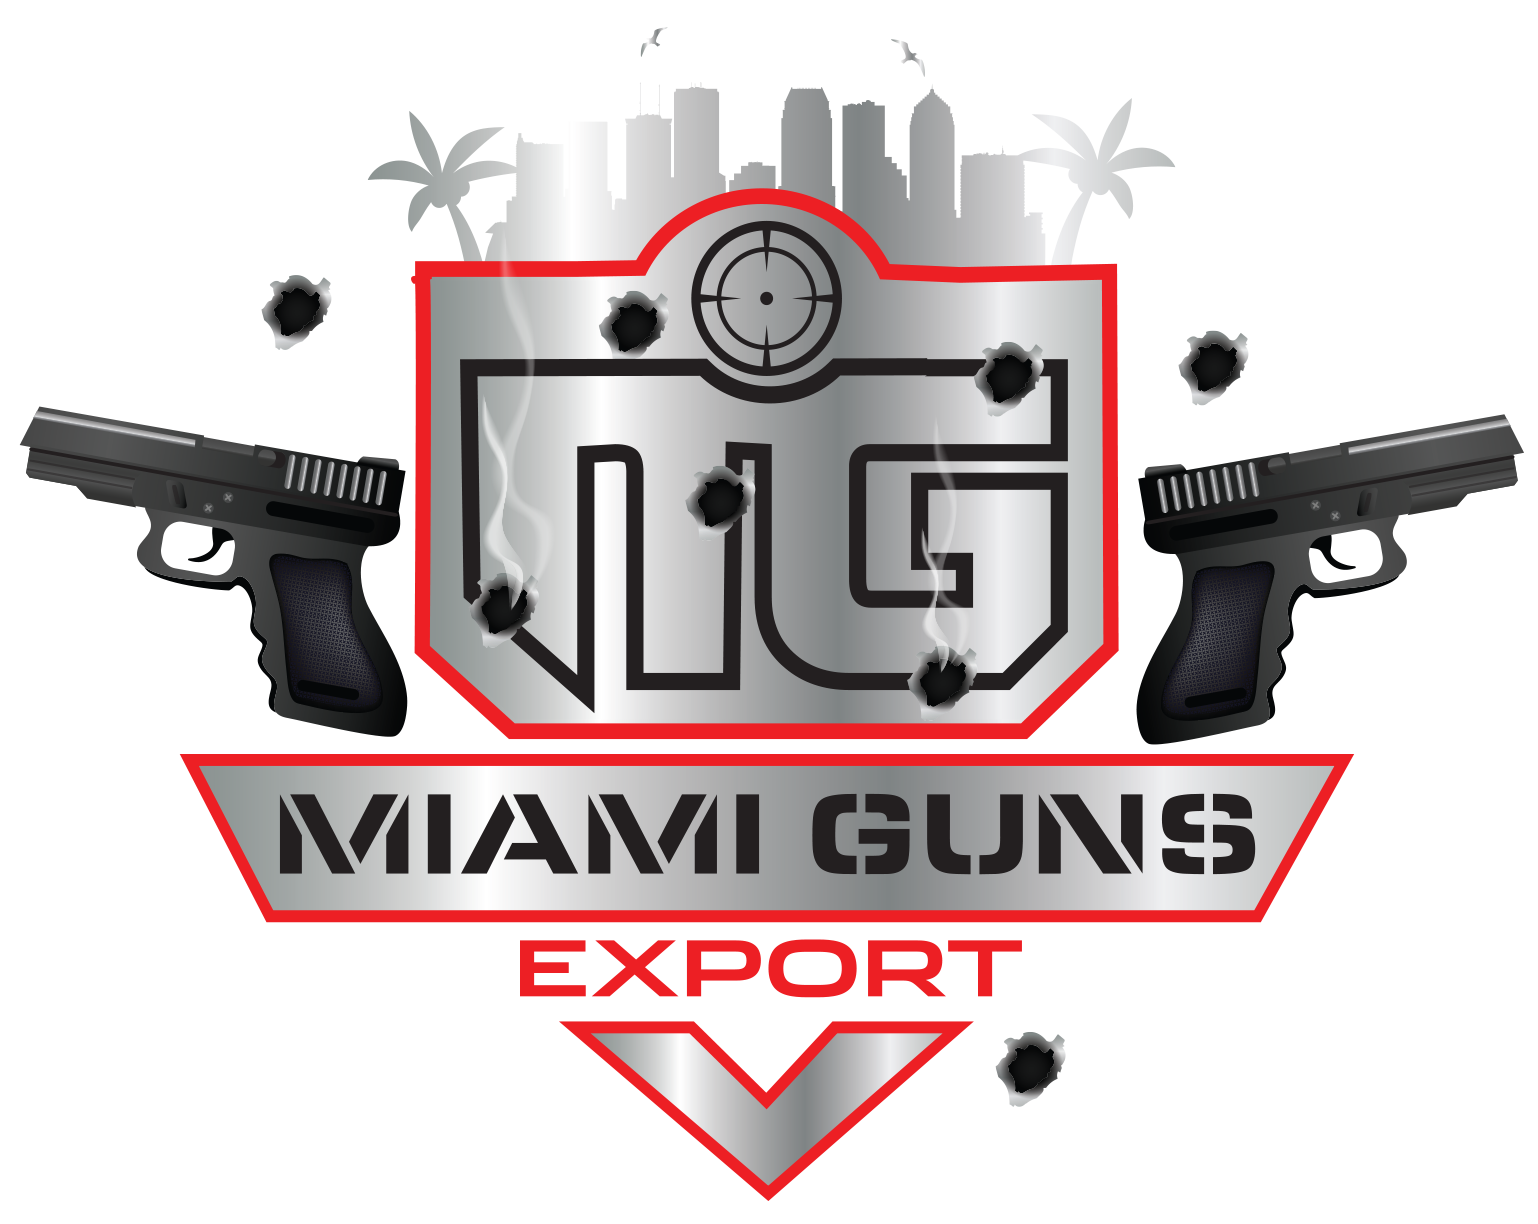 Miami Guns Export